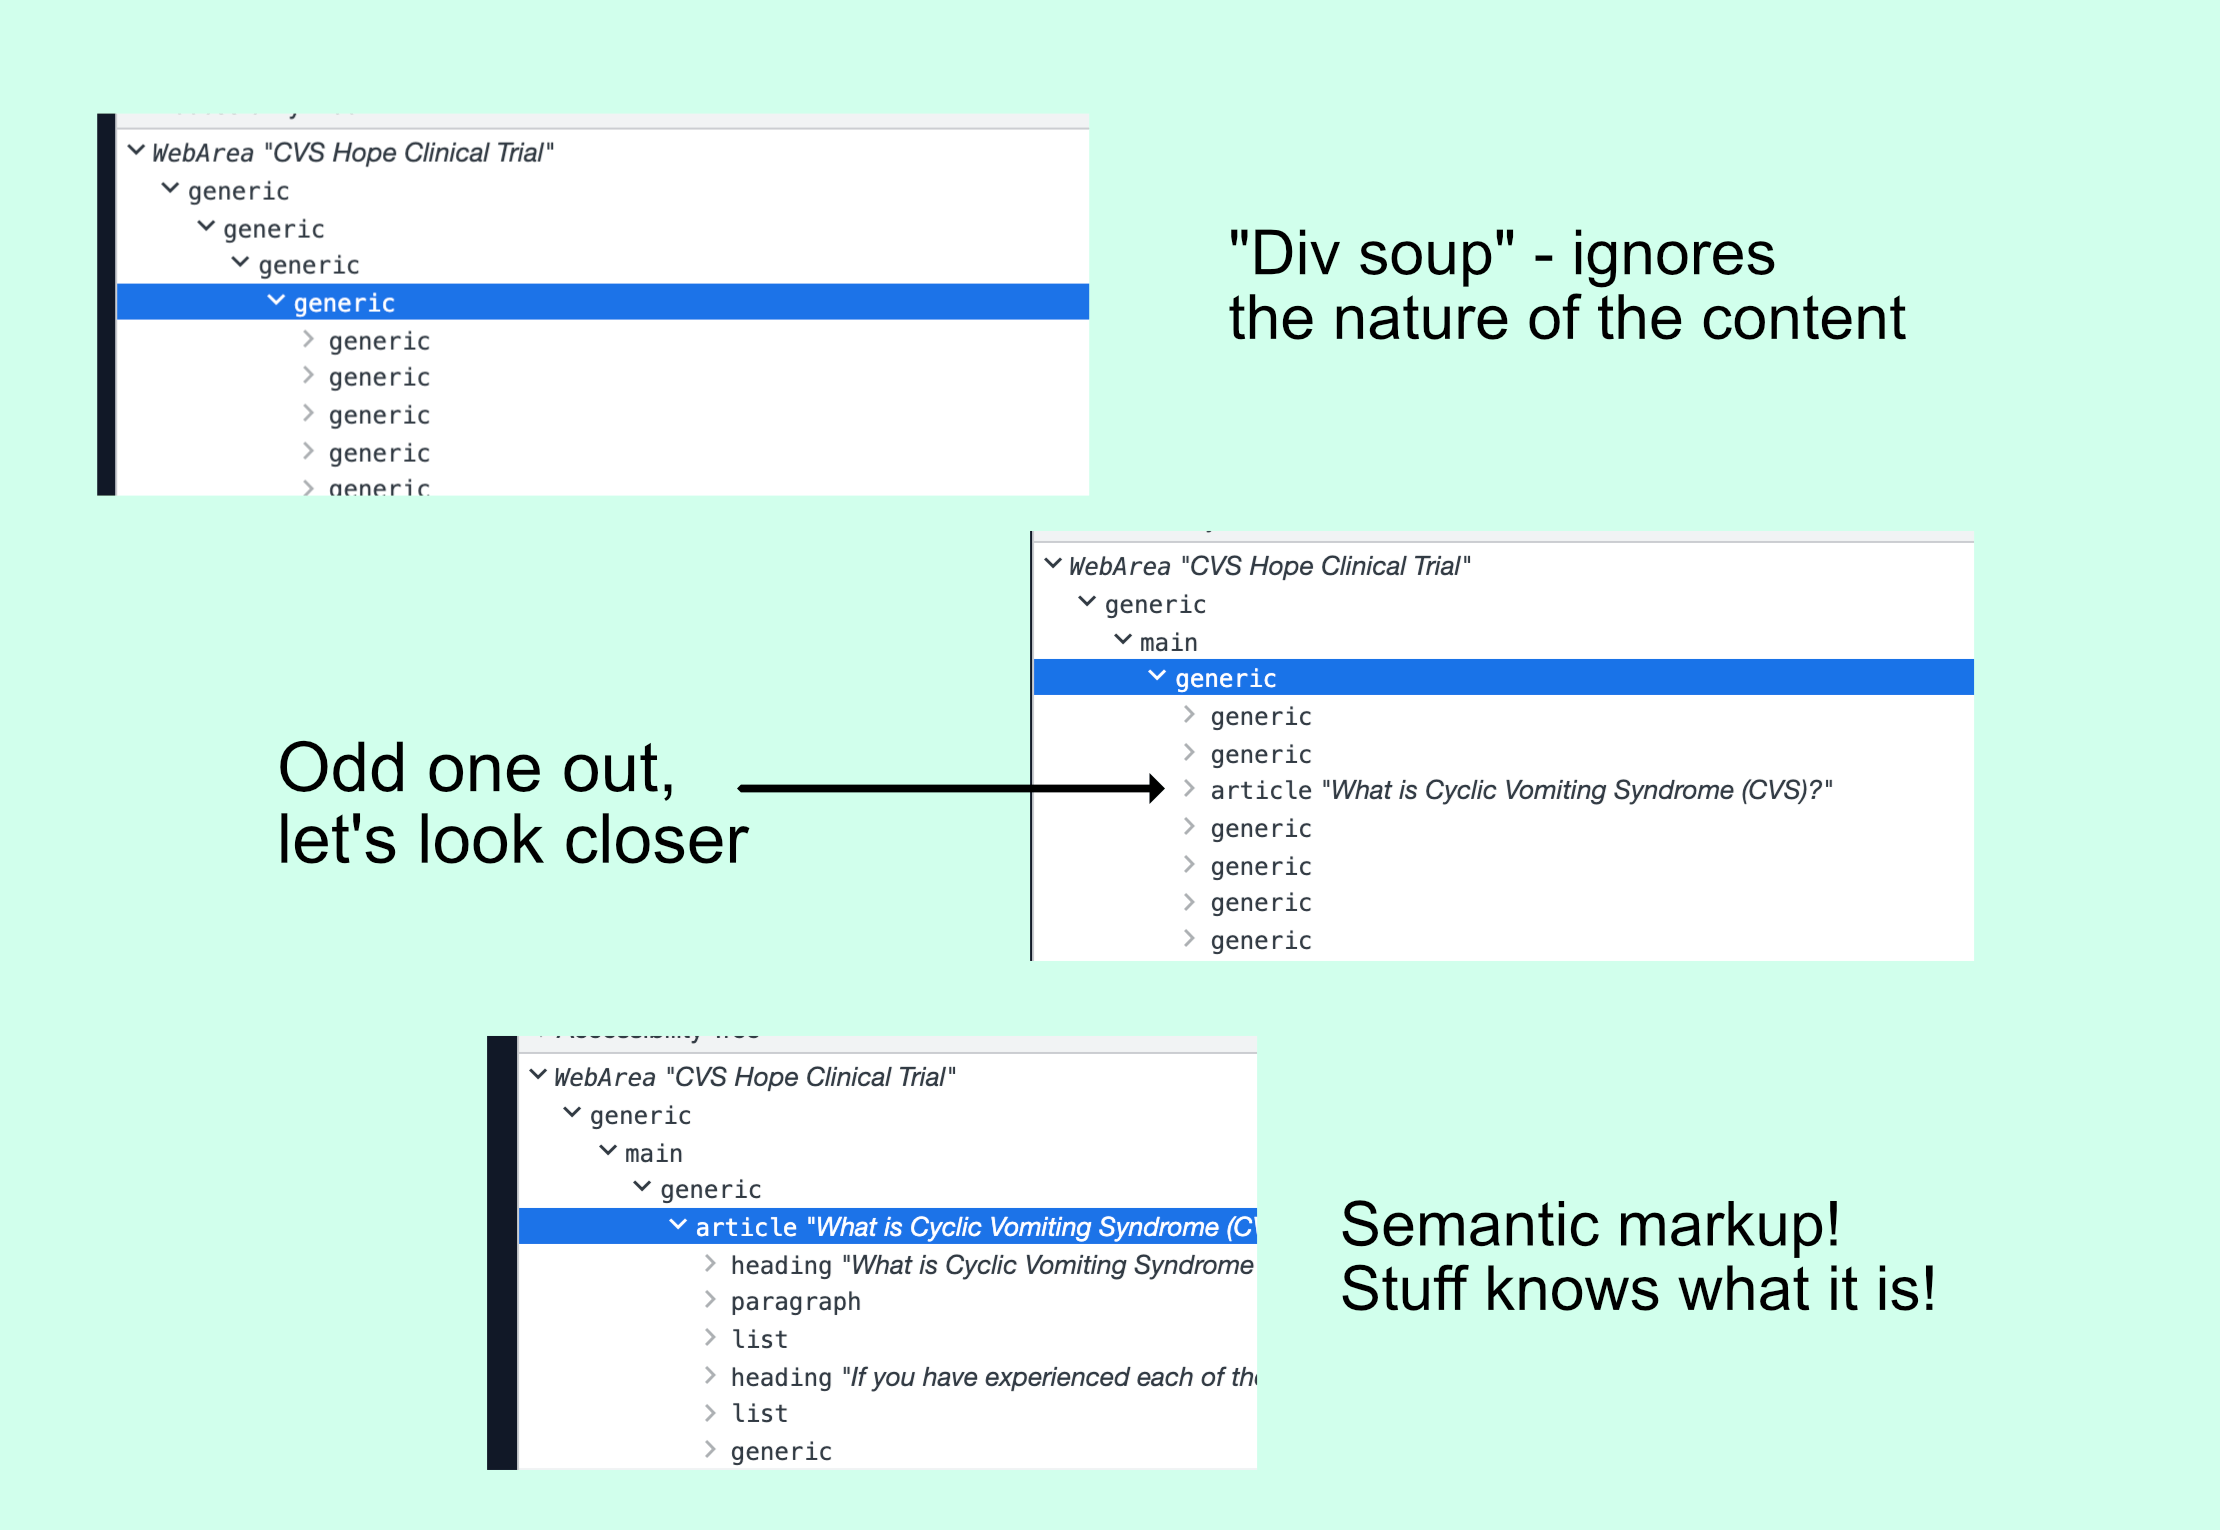 """Three screenshots of an accessibility tree. One is made up only of generic containers, the text beside it reads. """"Div soup - ignores the nature of the content."""" The next is all generic but has a main parent element and one article element with a title, """"What is Cyclic Vomiting Syndrome (CVS)?"""" The text beside it says the article is the odd one out and that we will look closer. The final image is the article element expanded in the accessibility tree, showing that it contains headings, paragraphs, and other semantically appropriate HTML elements. The text beside that one reads """"Semantic markup! Stuff knows what it is!"""""""